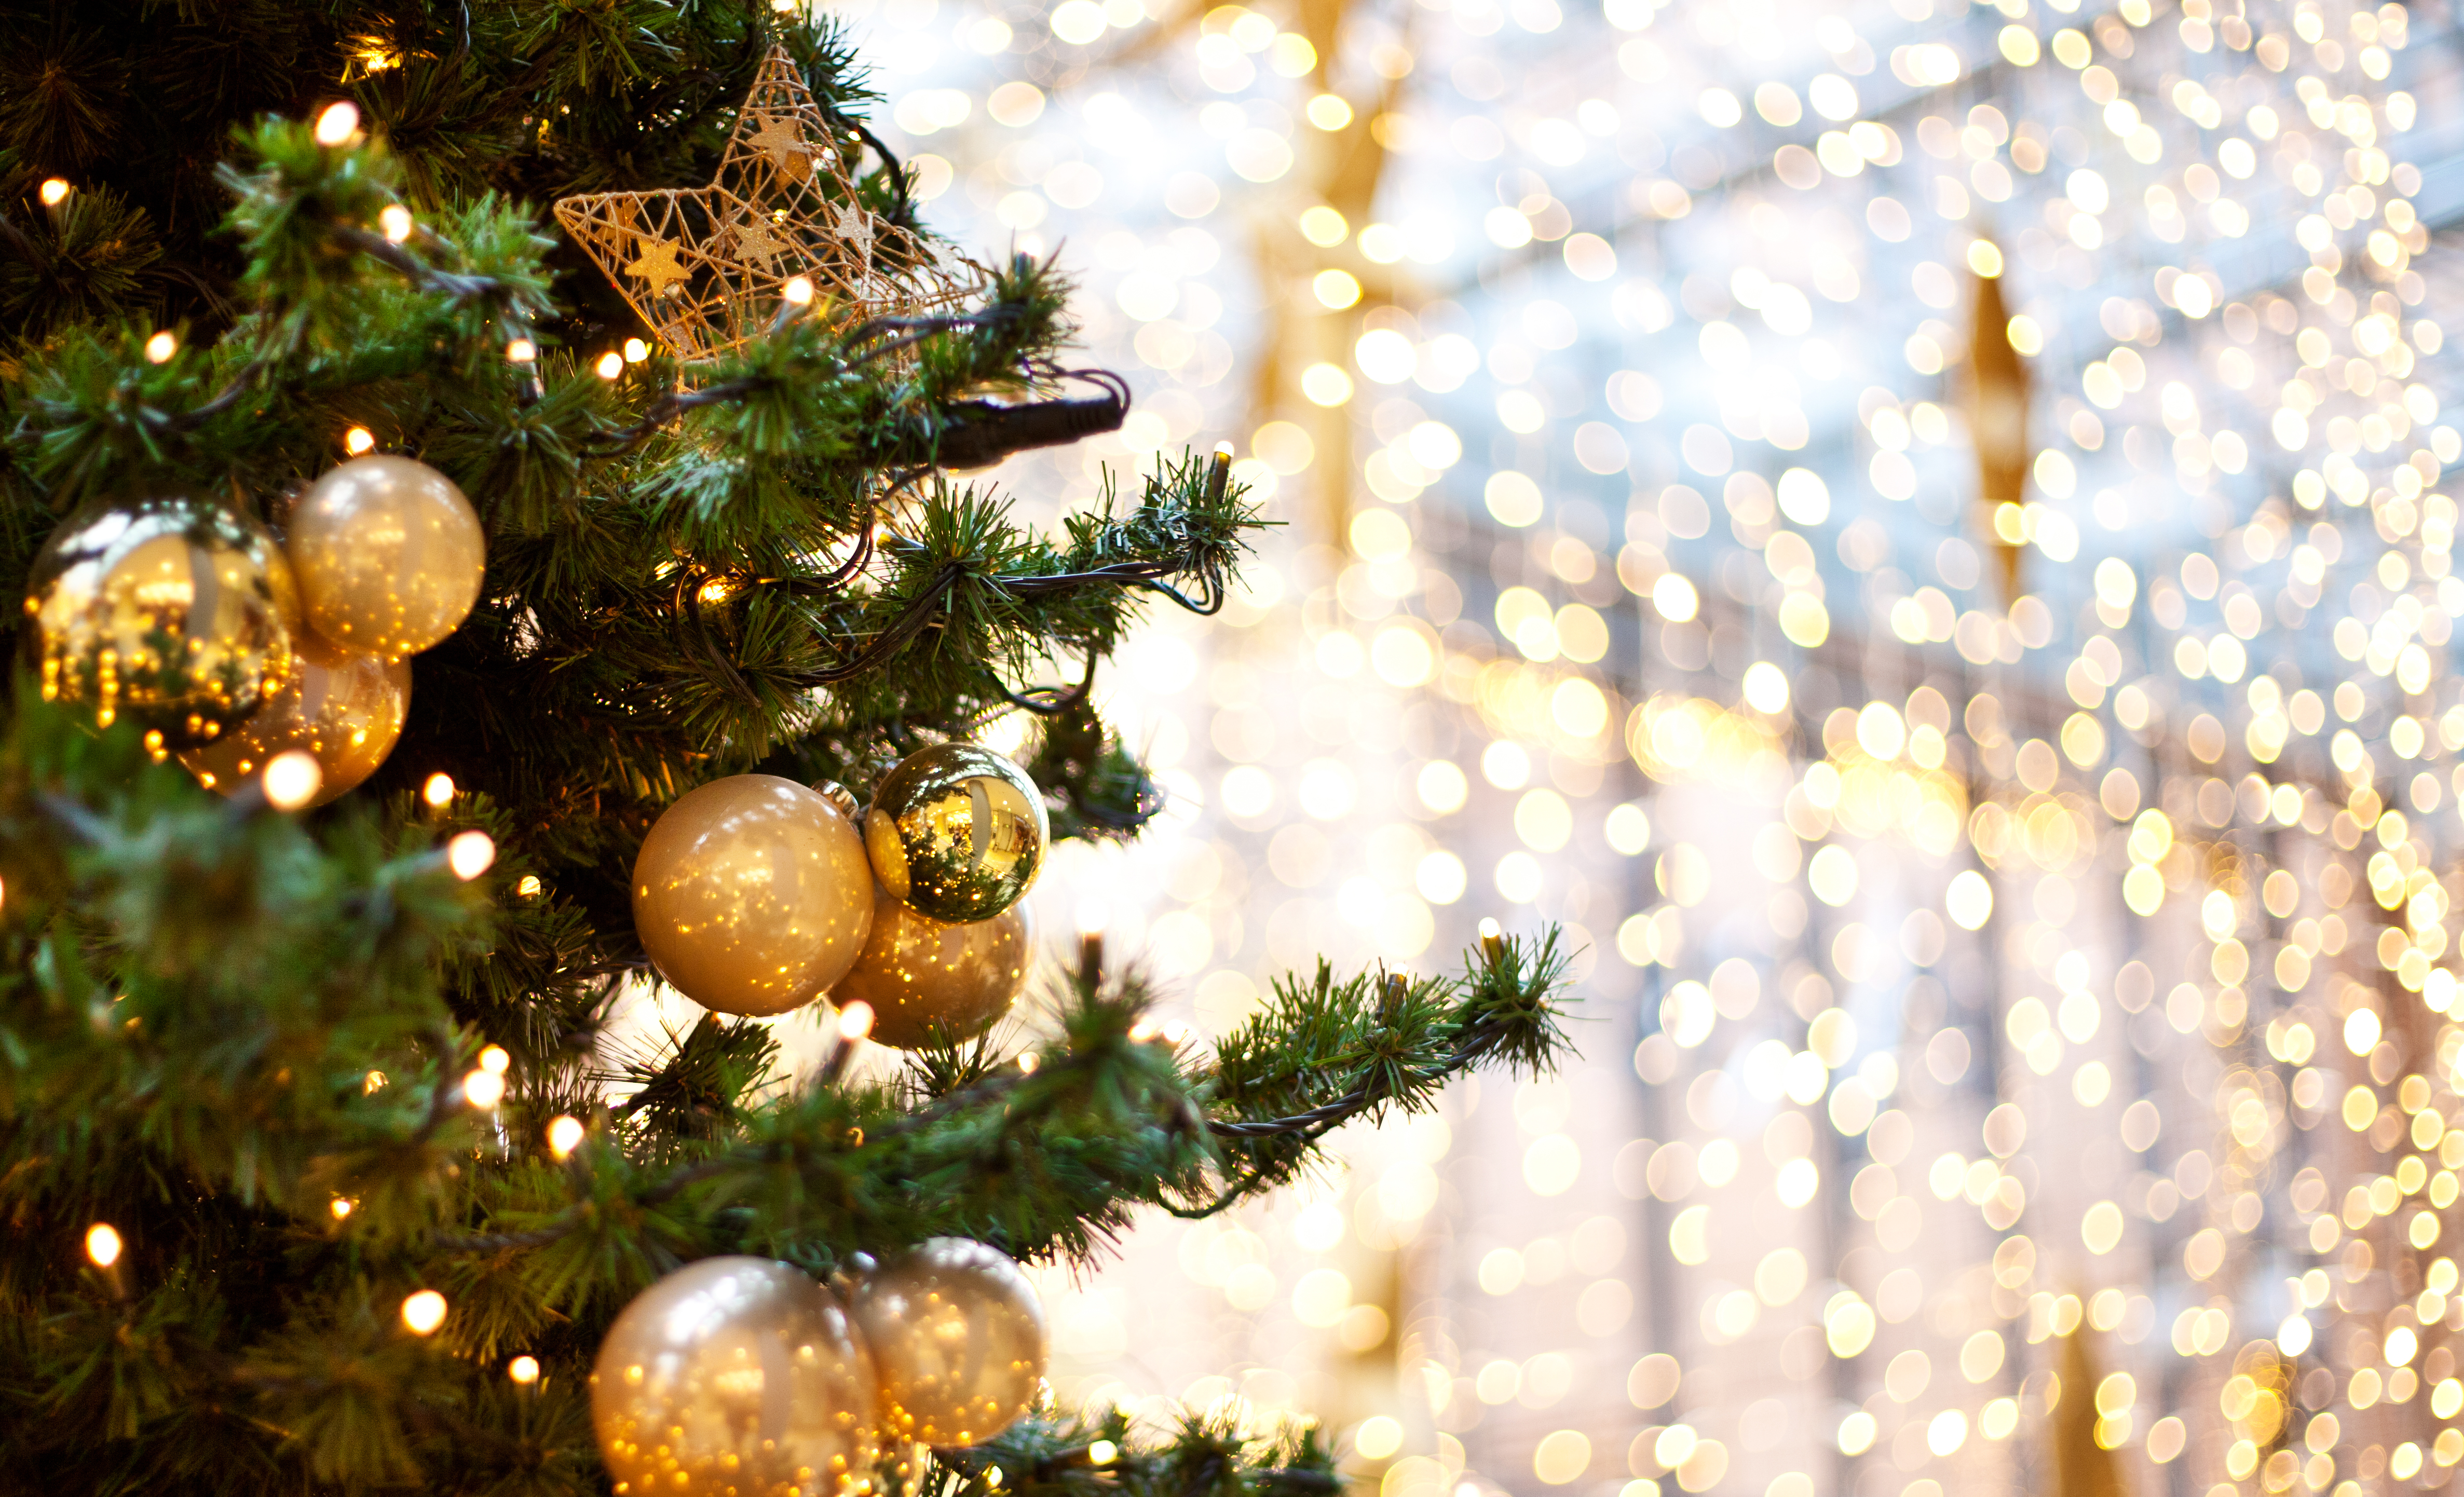 Christmas tree decorated in gold ornament